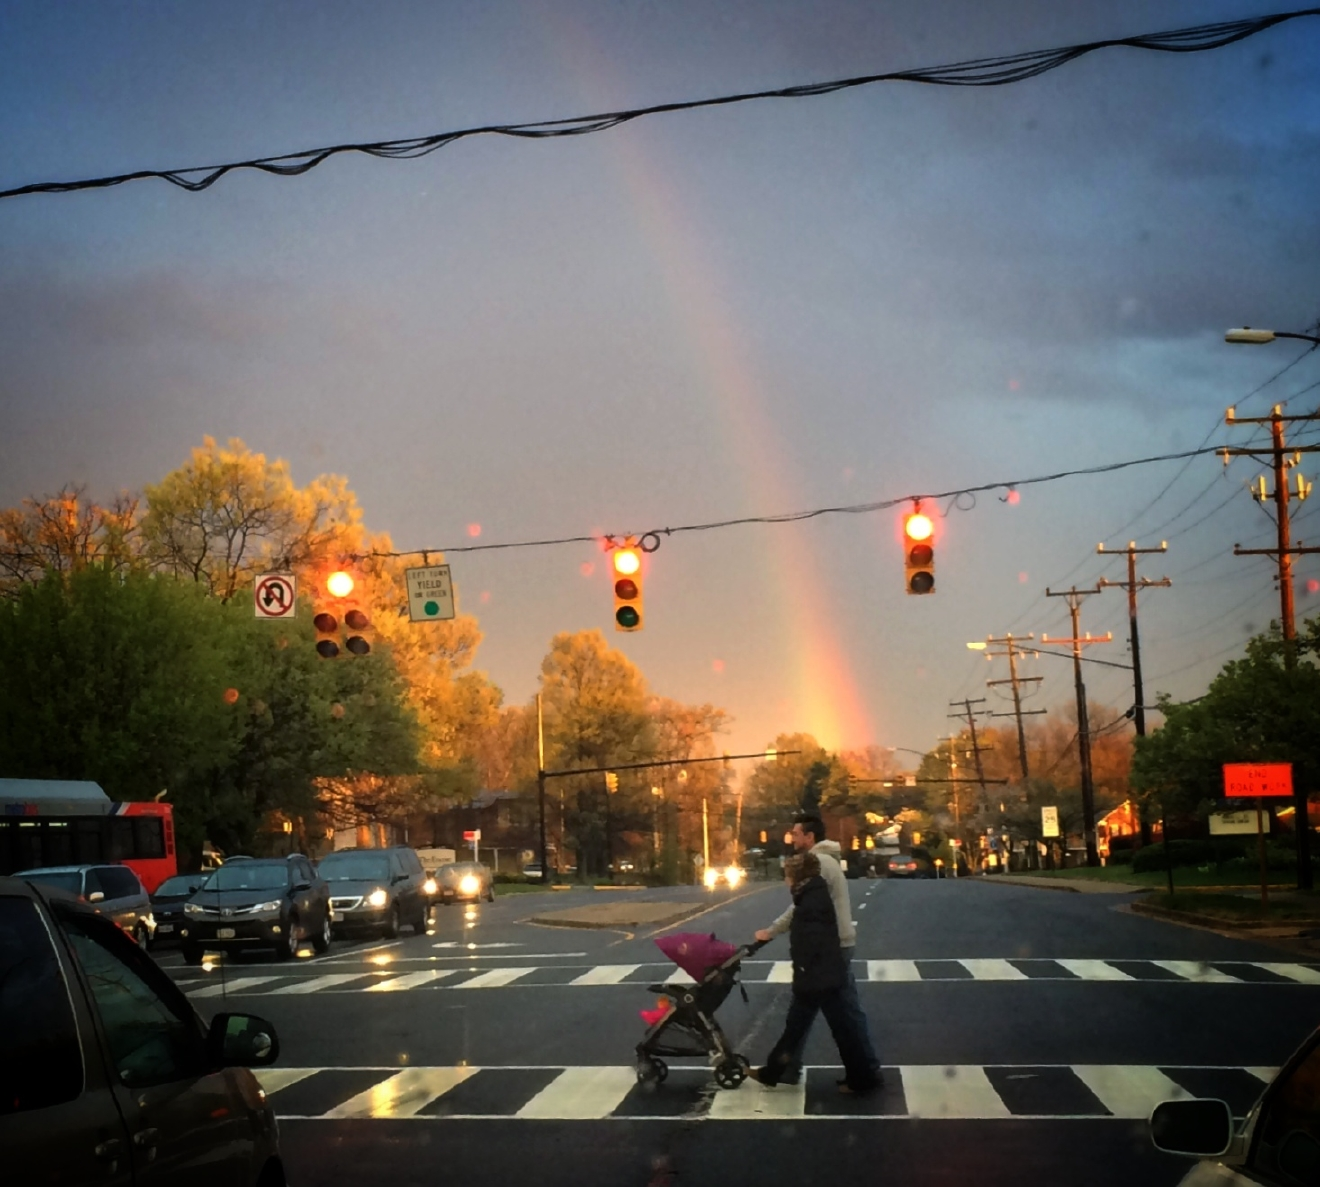 photos after the storm comes the rainbow wjla a rainbow in the sky photo by viewer john rice jr